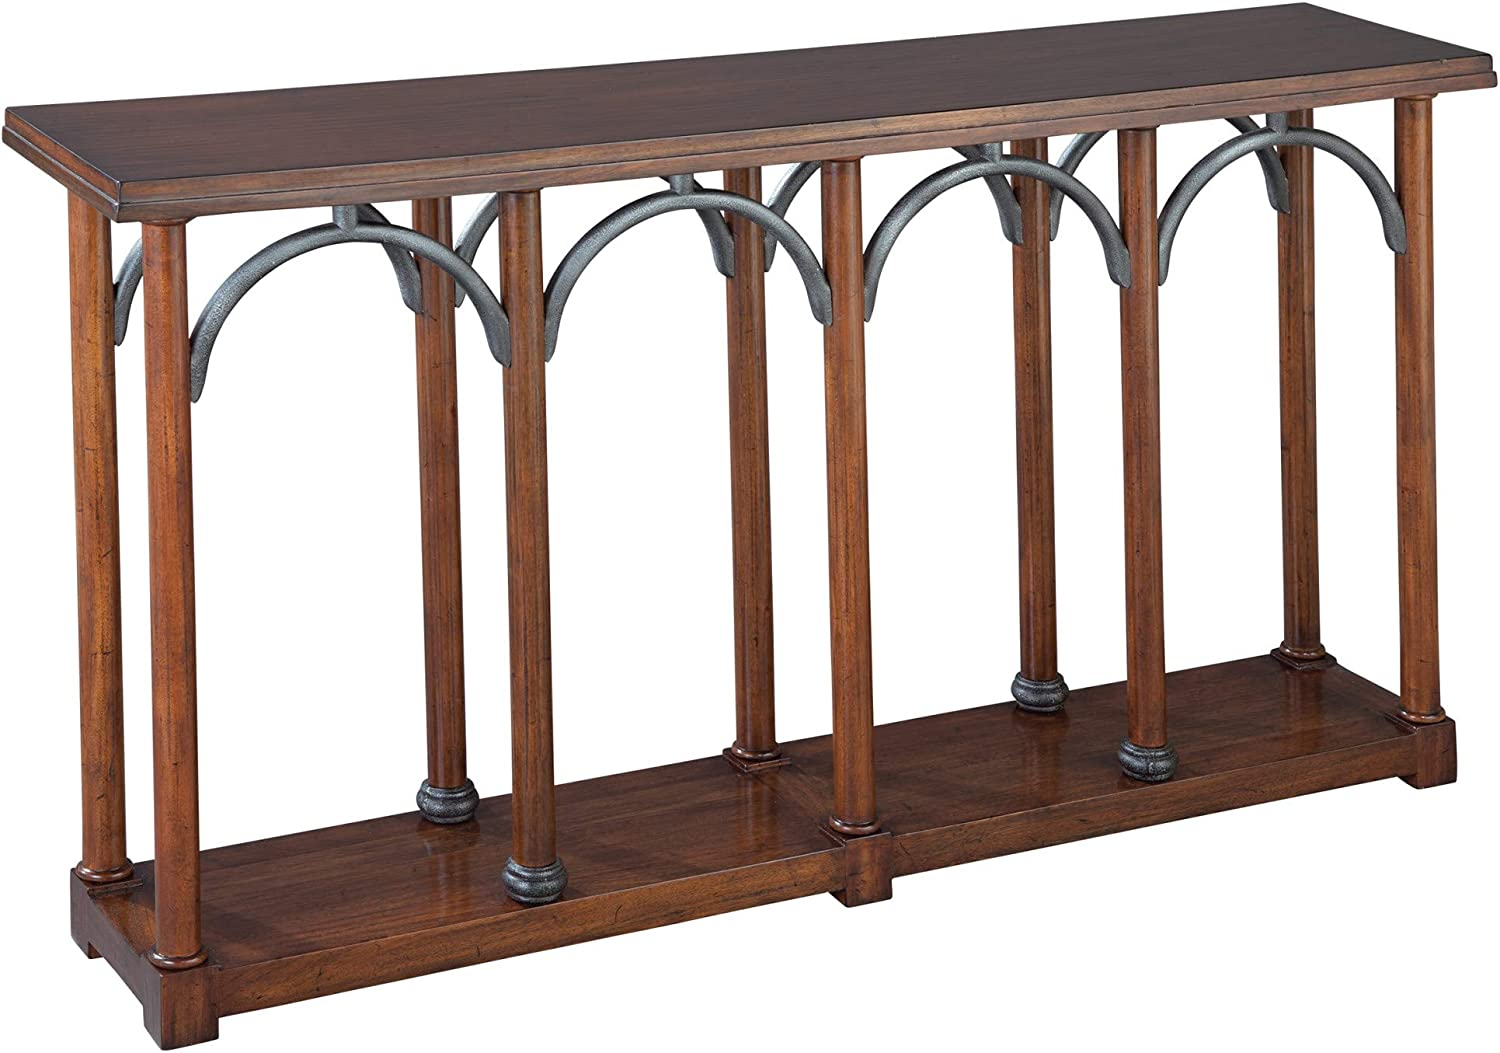 Hekman Furniture Console with Metal Arches